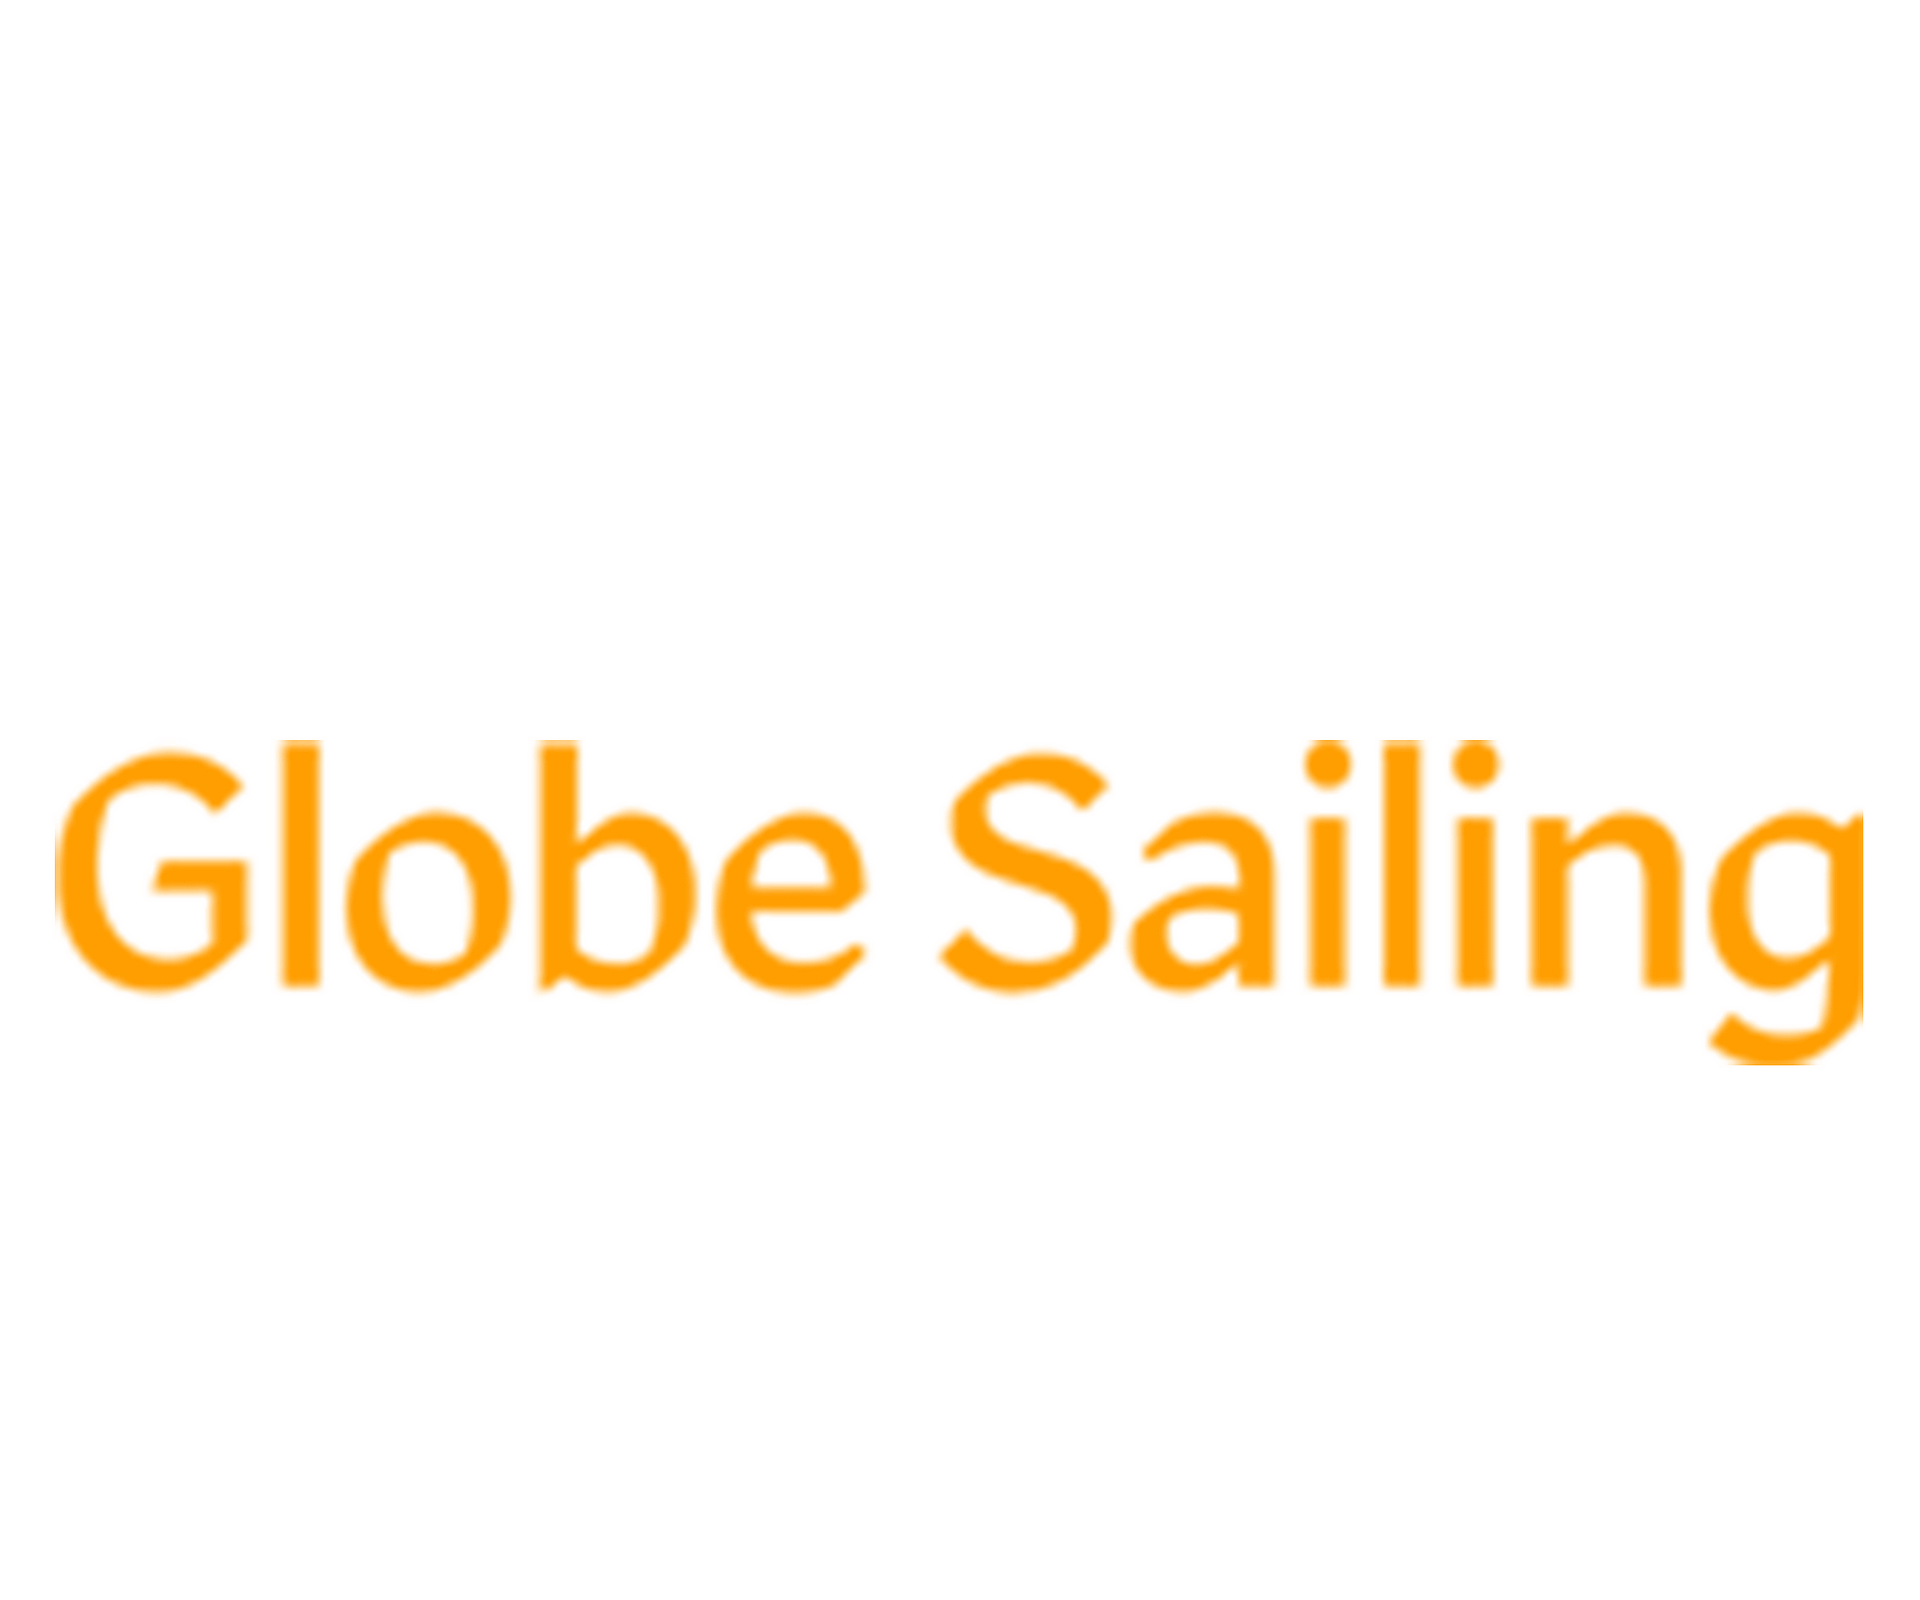 Located in South America, Globe Sailing collaborate closely with us.